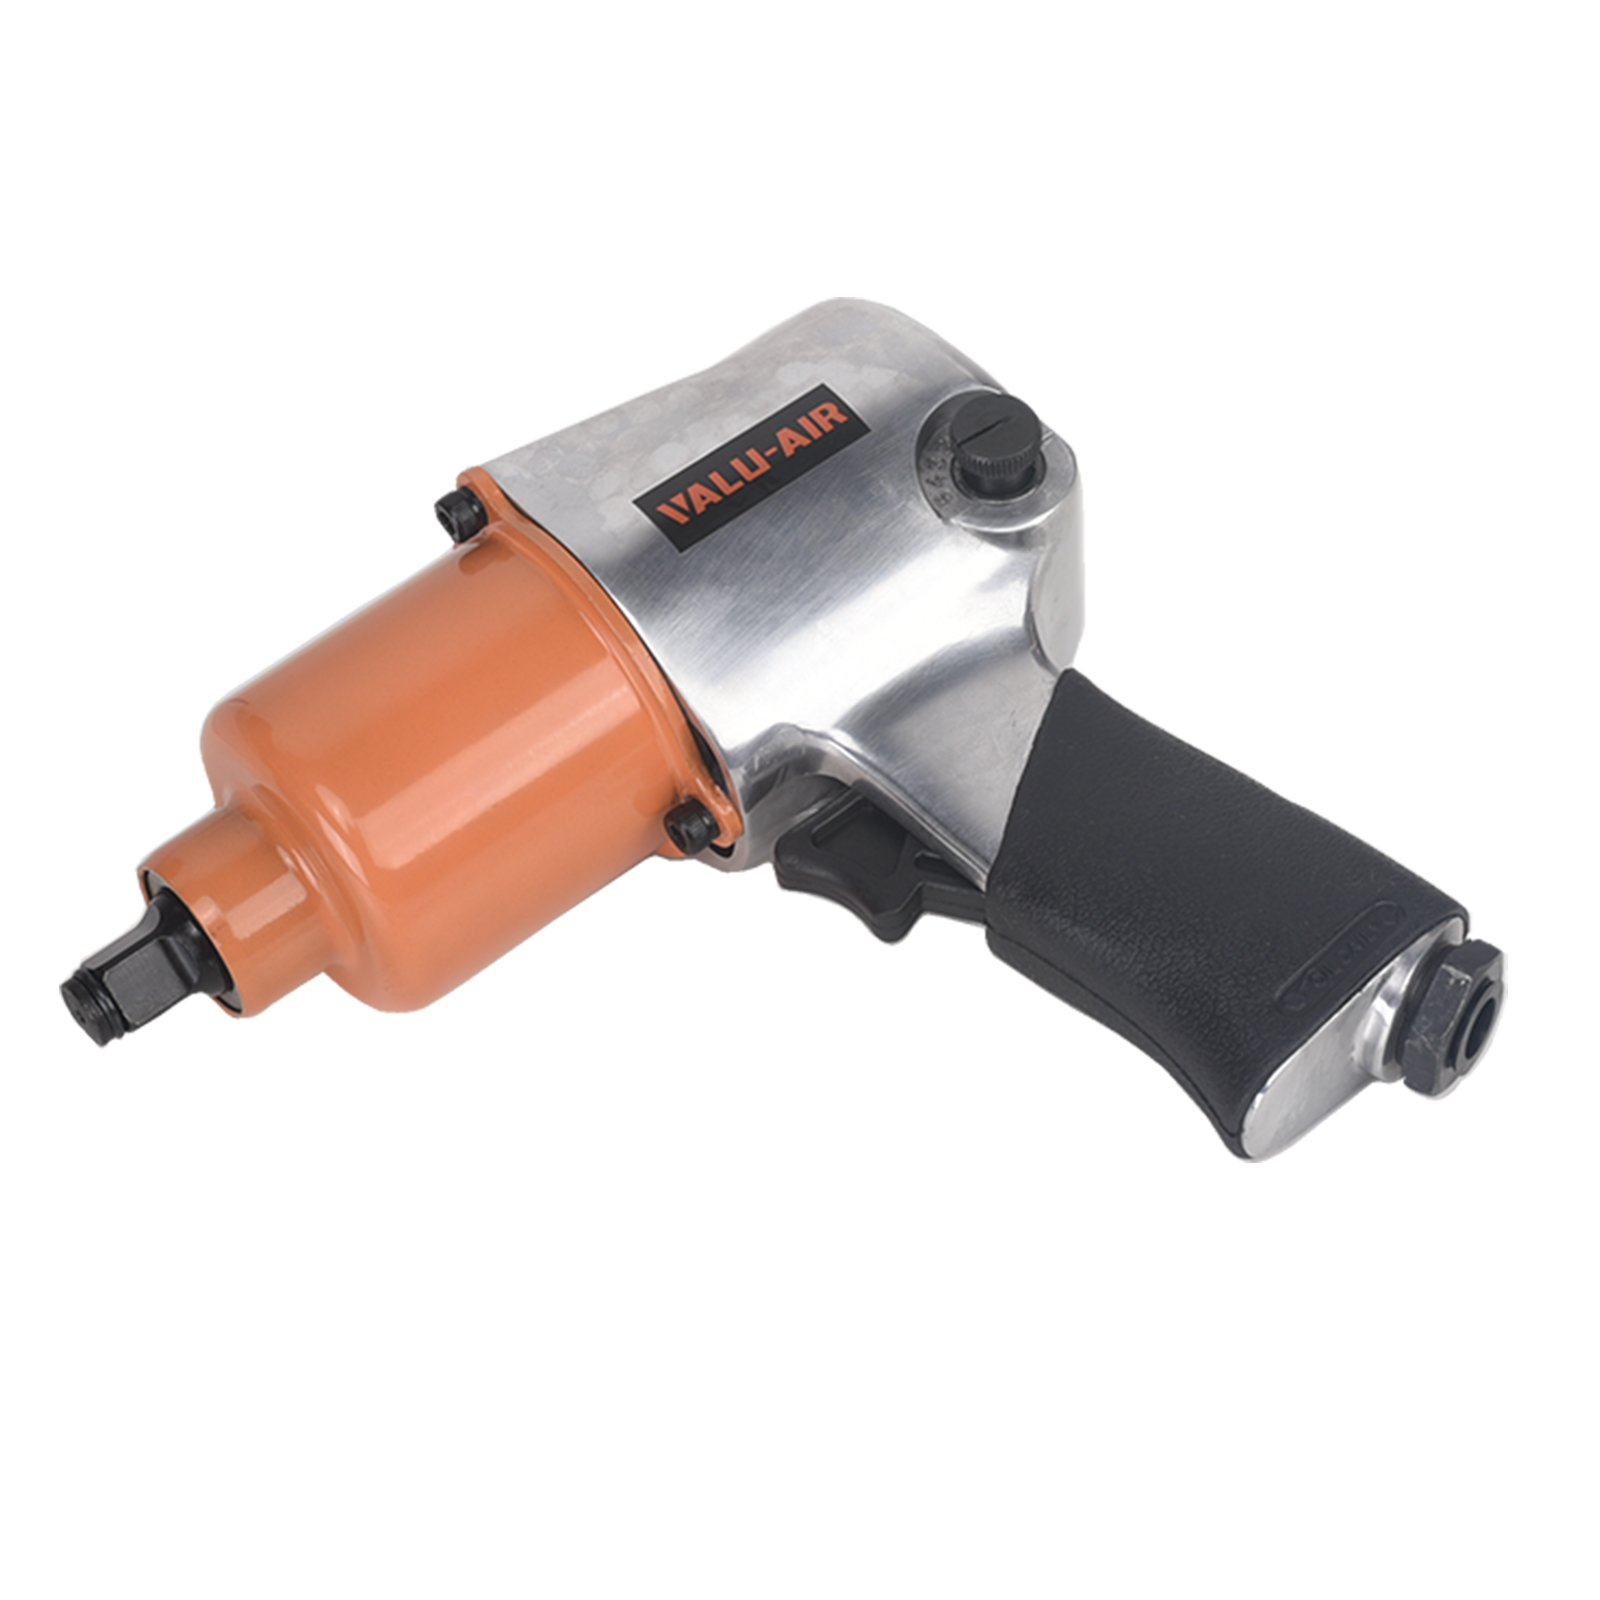 Valu-Air RP7430 1/2 Twin Hammer Air Impact Wrench by Valu-Air (Image #2)